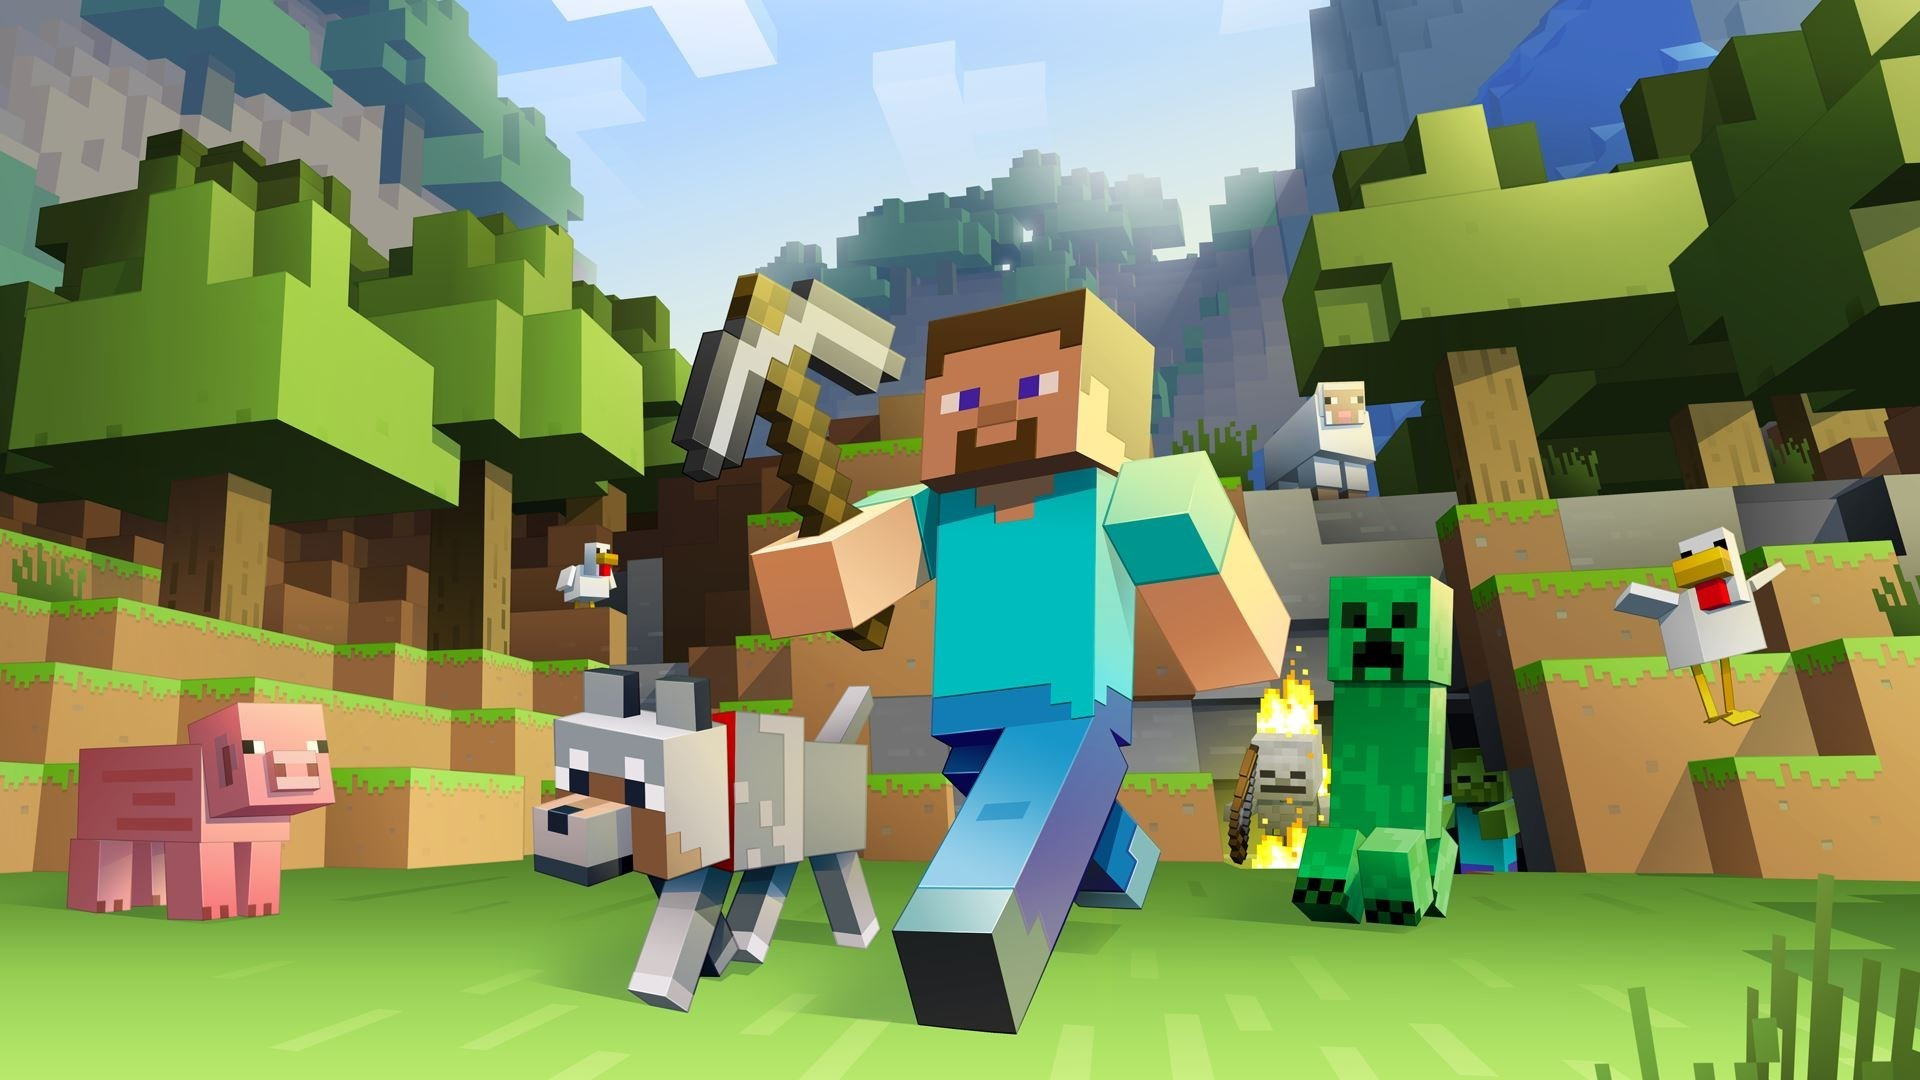 Wonderful Wallpaper Minecraft Zombie Pigman - 48874-download-minecraft-backgrounds-1920x1080-picture  Perfect Image Reference_984832.jpg